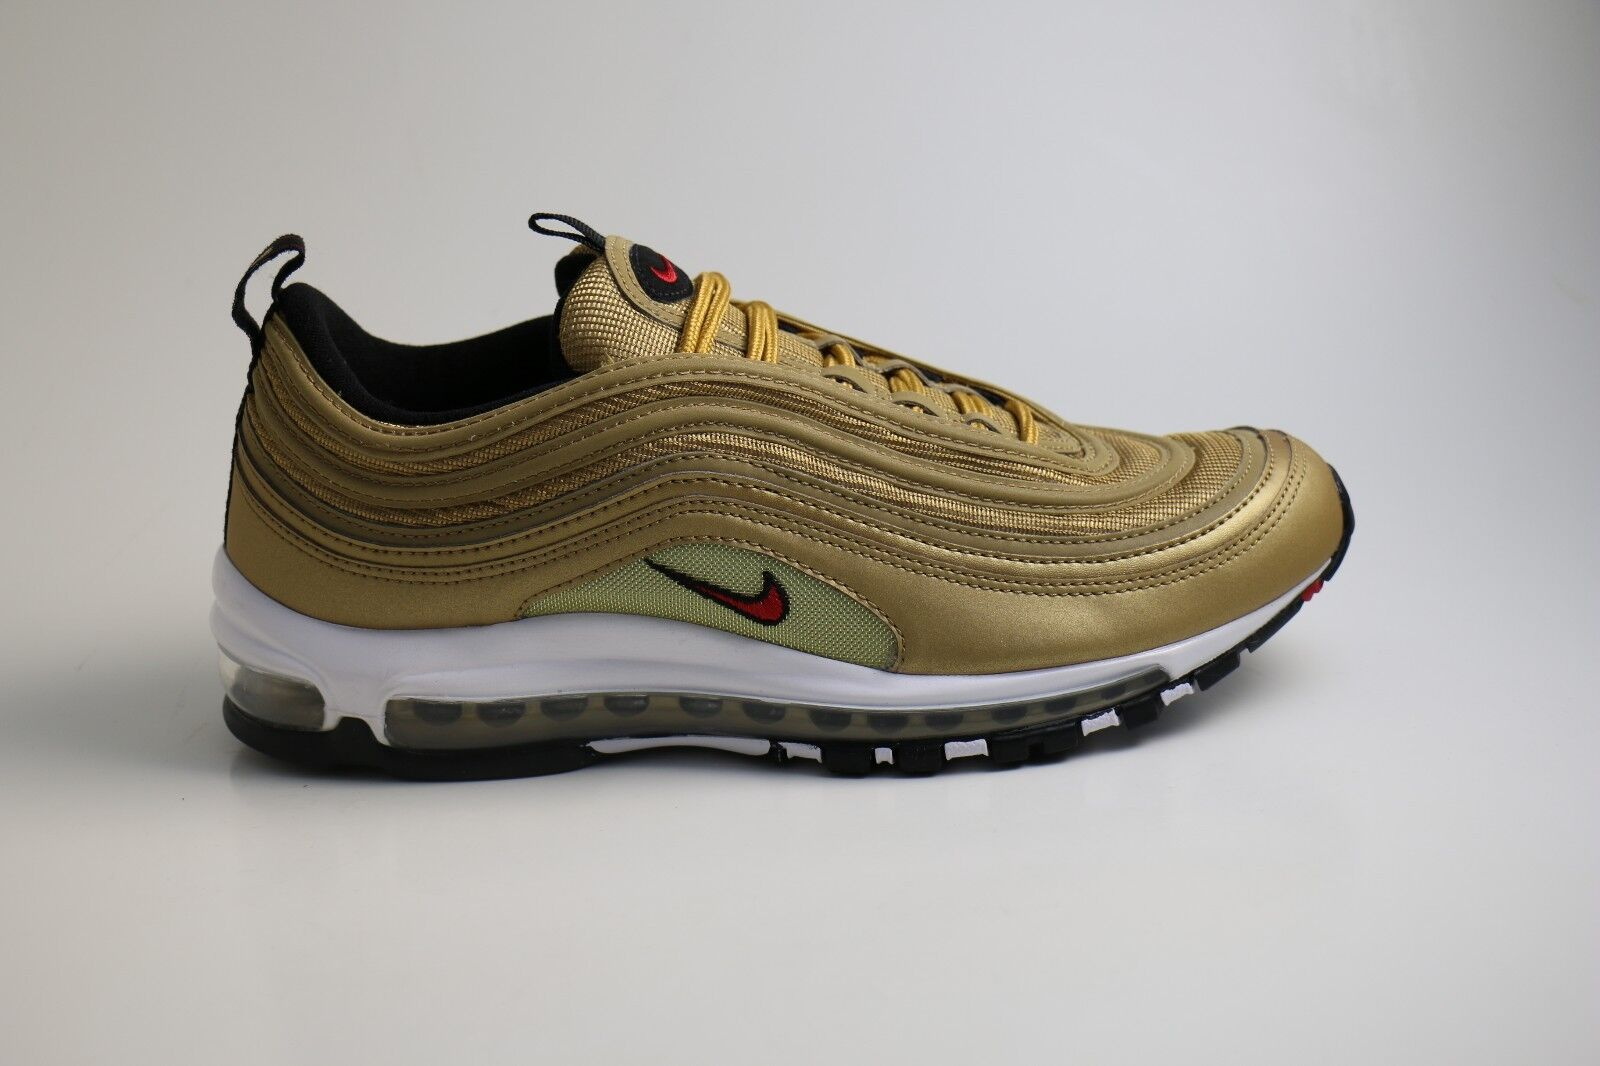 Nike Air Max 97 41 OG Gold Bullet EUR 41 97 43 44 45 US 8 9 10 11 884421  700 b59b87